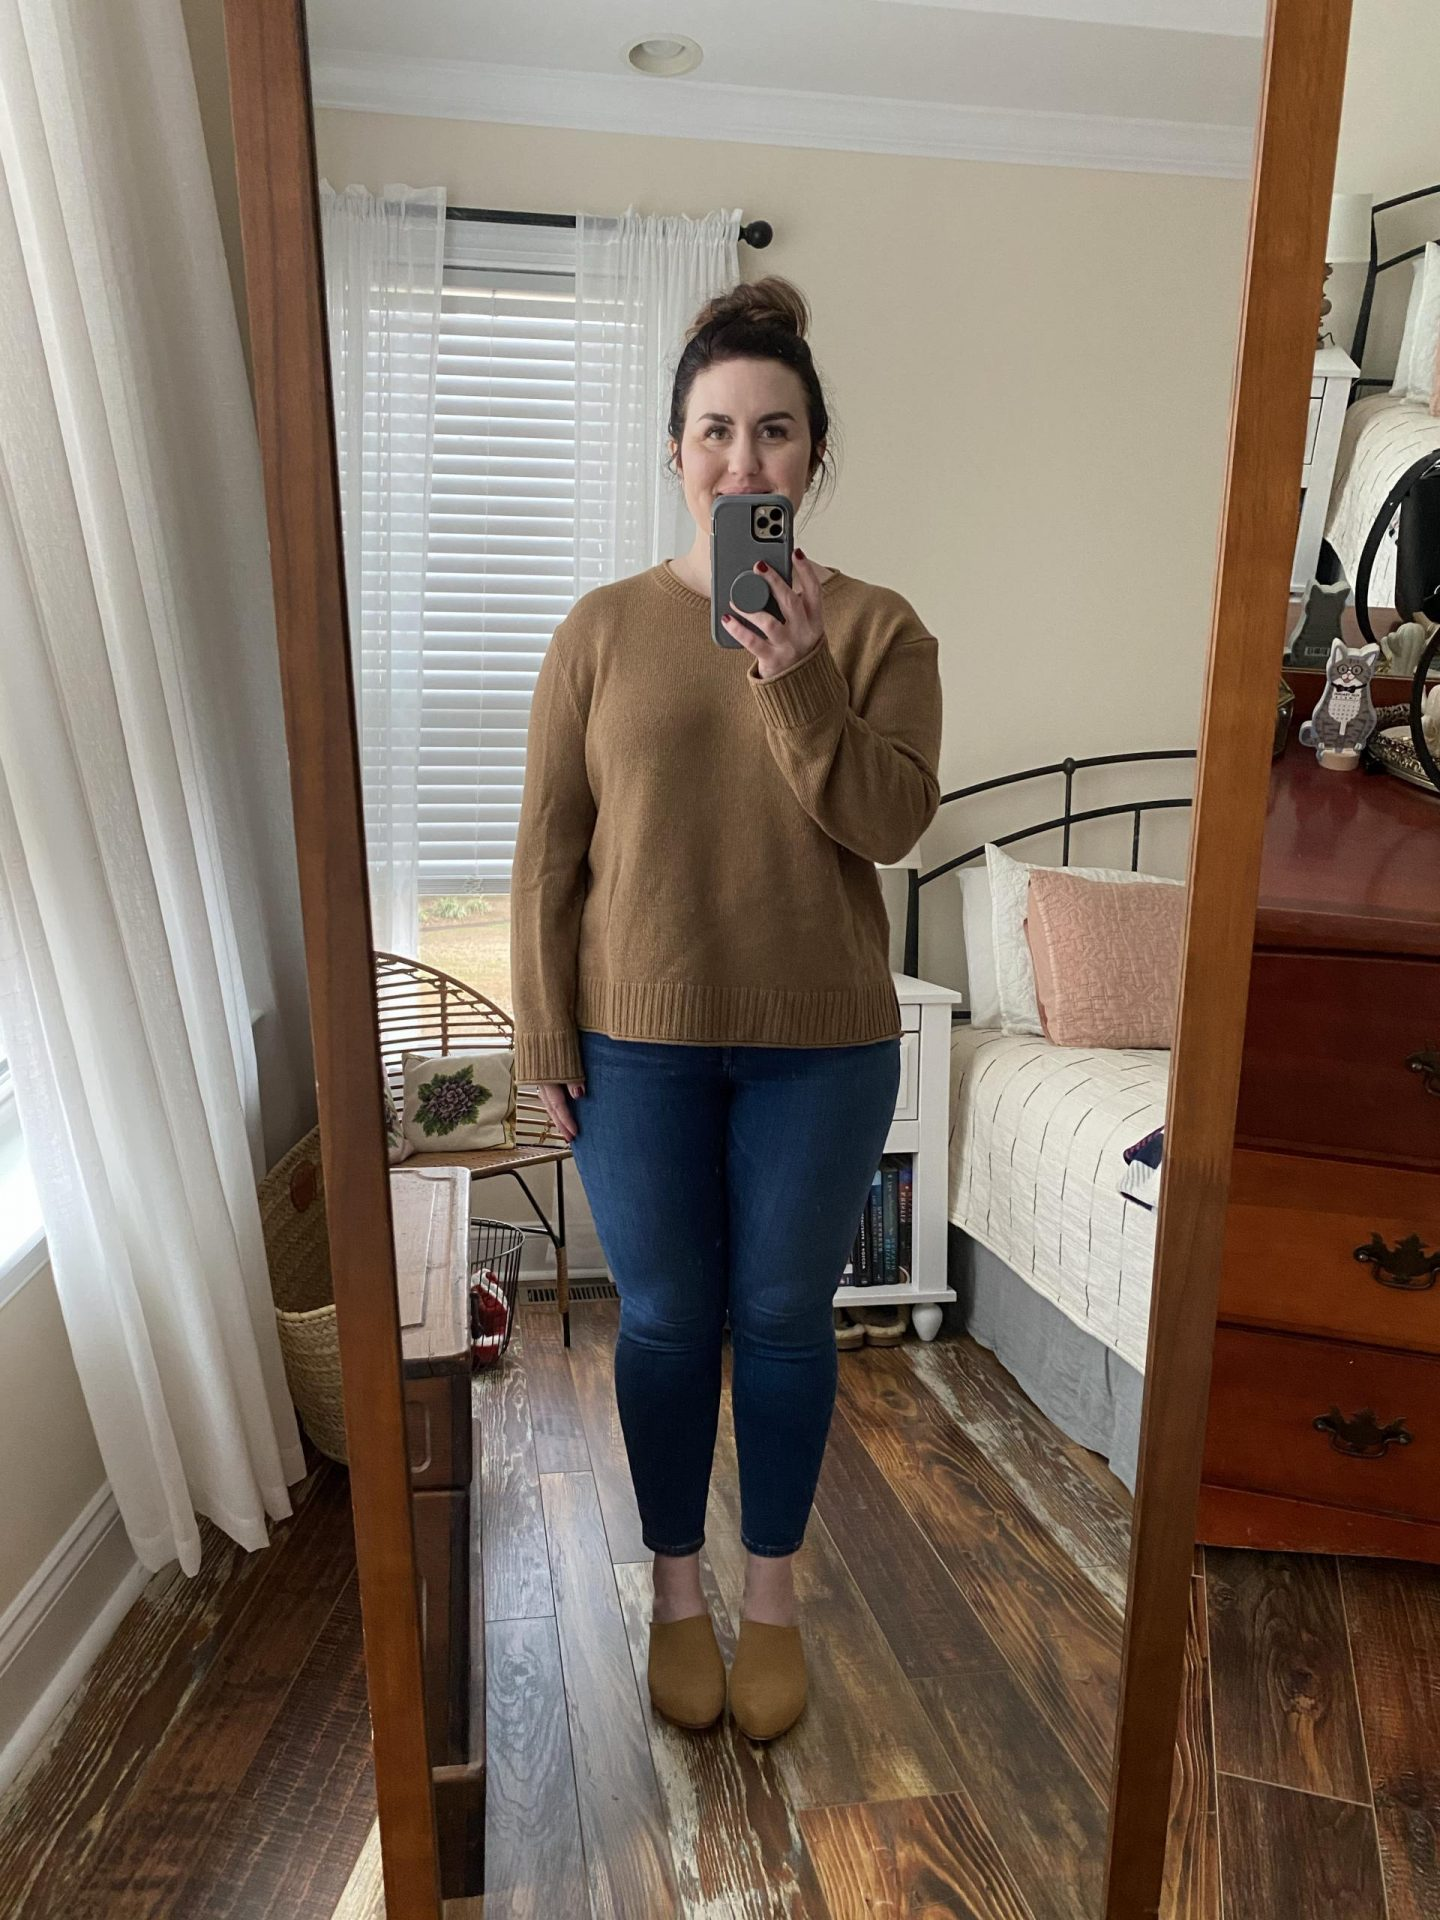 NC blogger Rebecca Lately is sharing her Jenni Kayne Everyday Sweater review. If you are curvy petite, this might be super helpful for you!